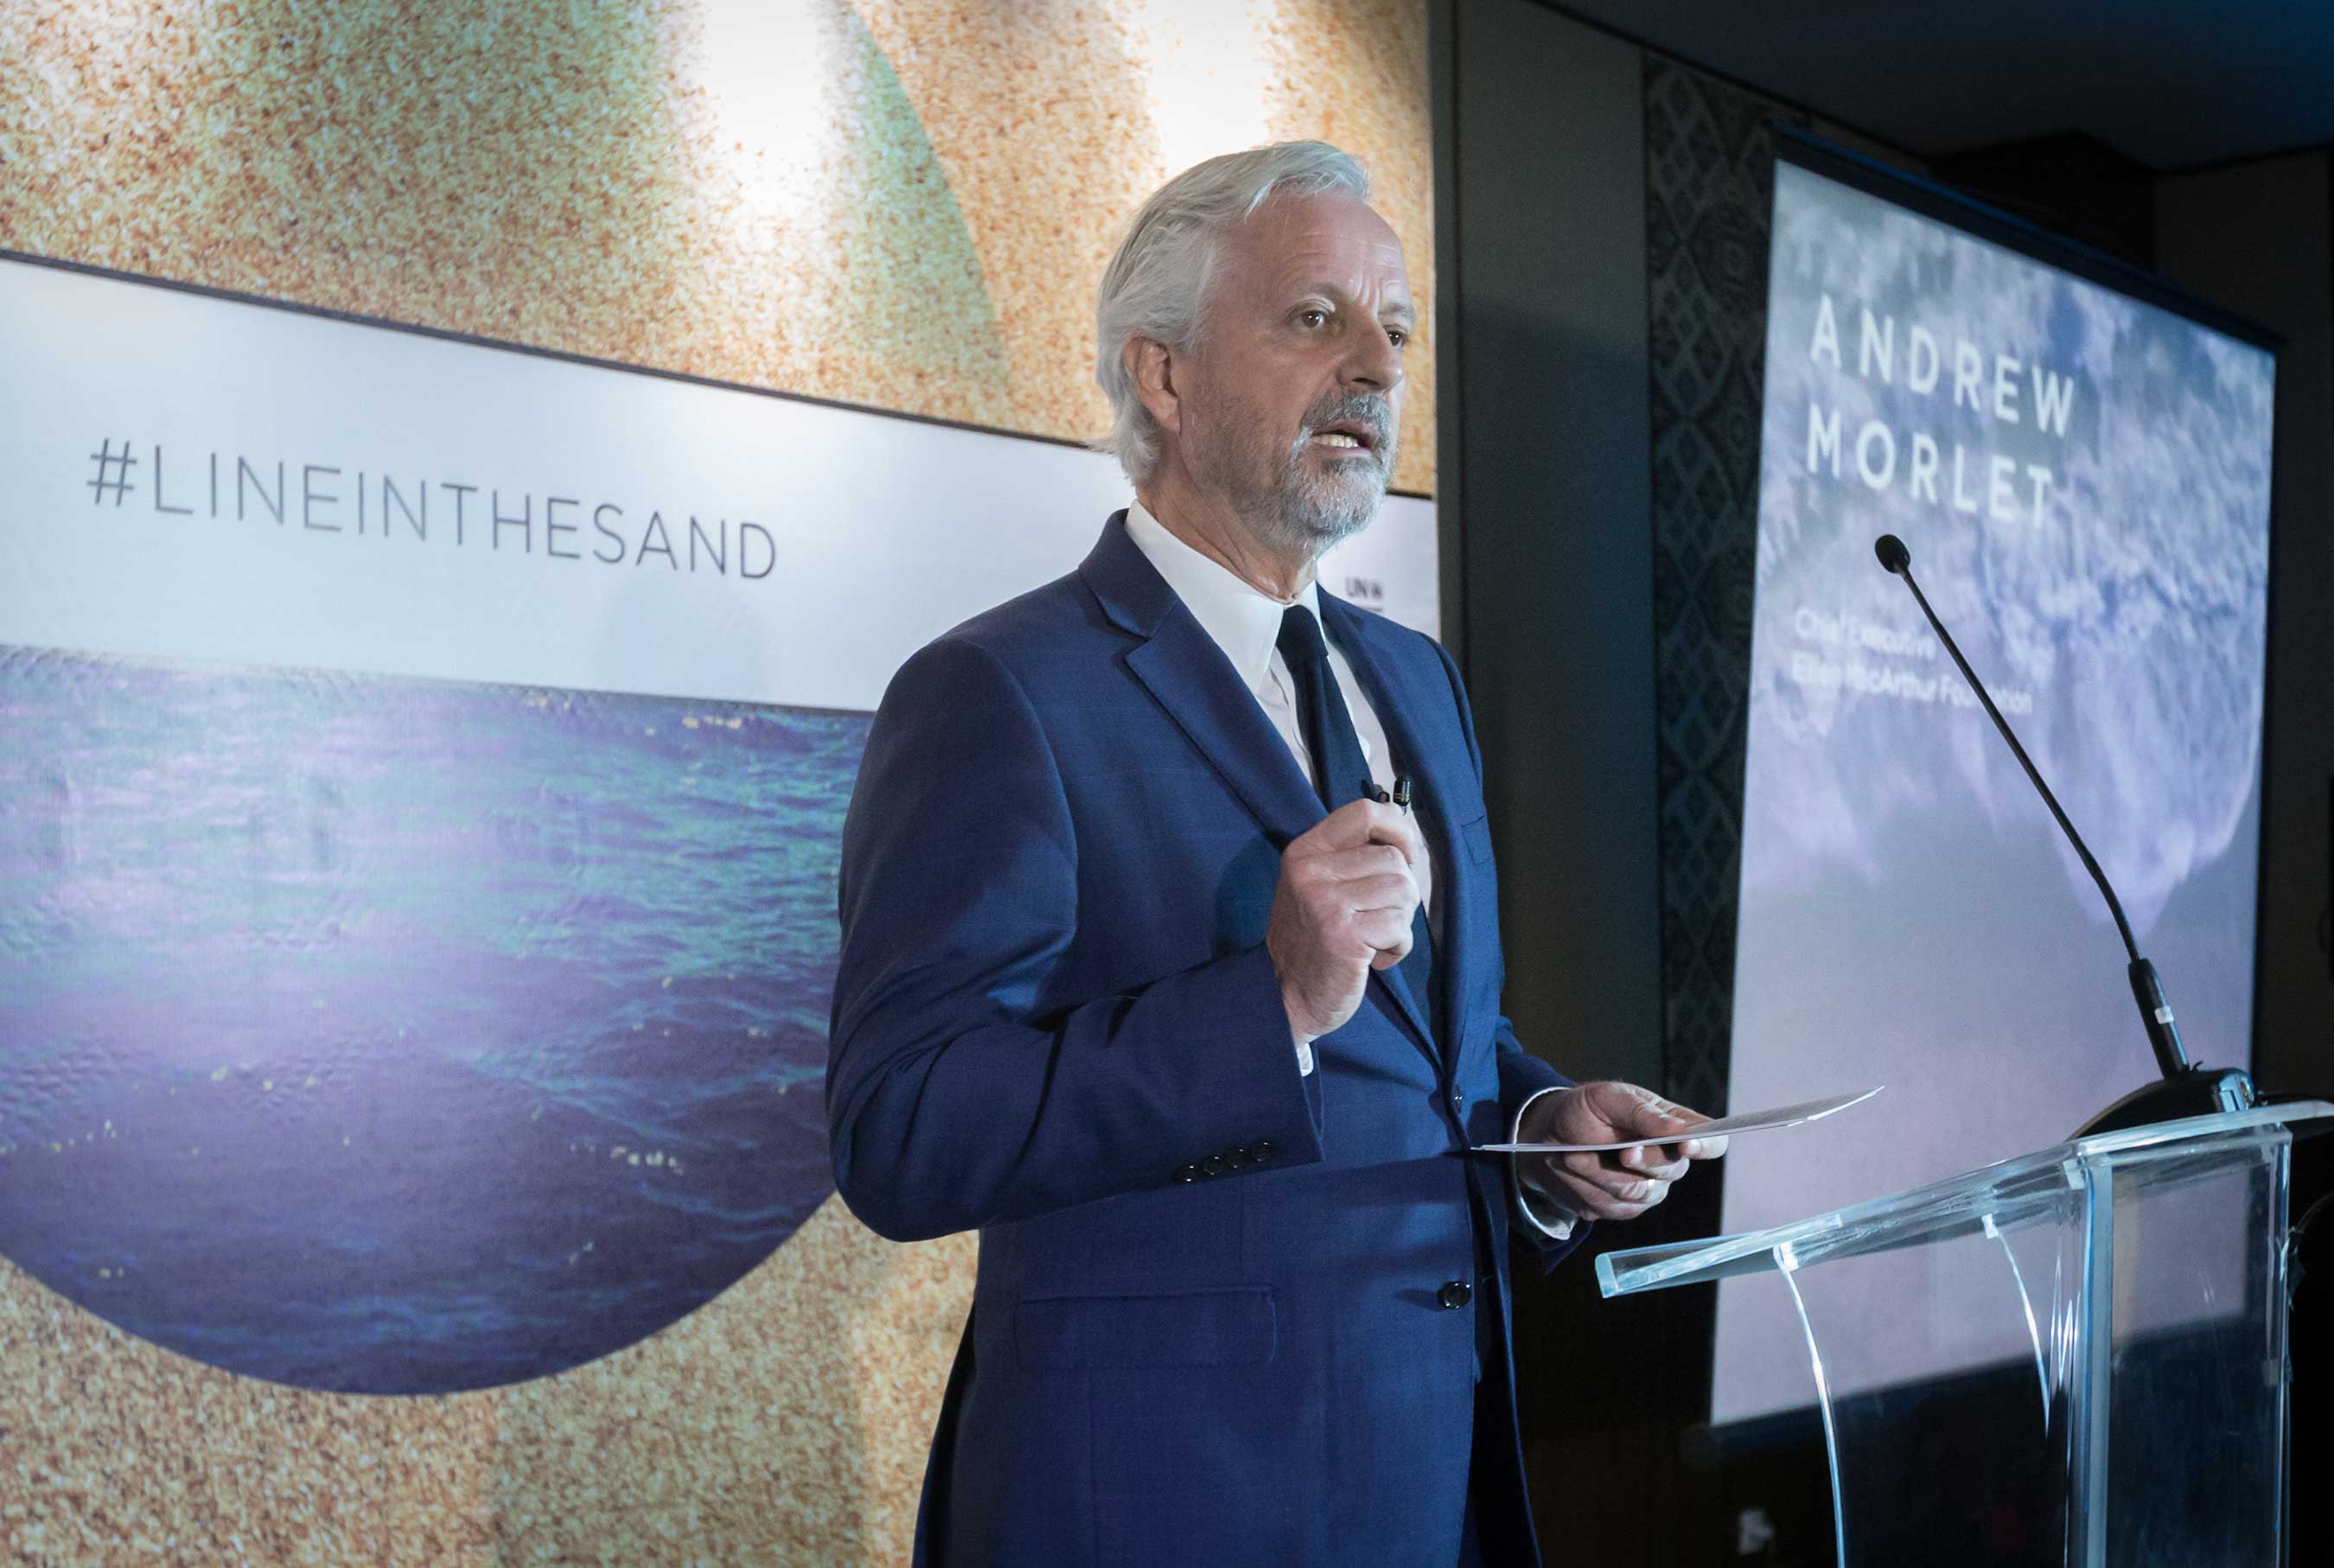 Andrew Morlet, CEO of the Ellen MacArthur Foundation, addresses delegates in Bali, Indonesia during signing of the New Plastic Economy Global Commitment. (Graham Crouch/AP Photography for SC Johnson)